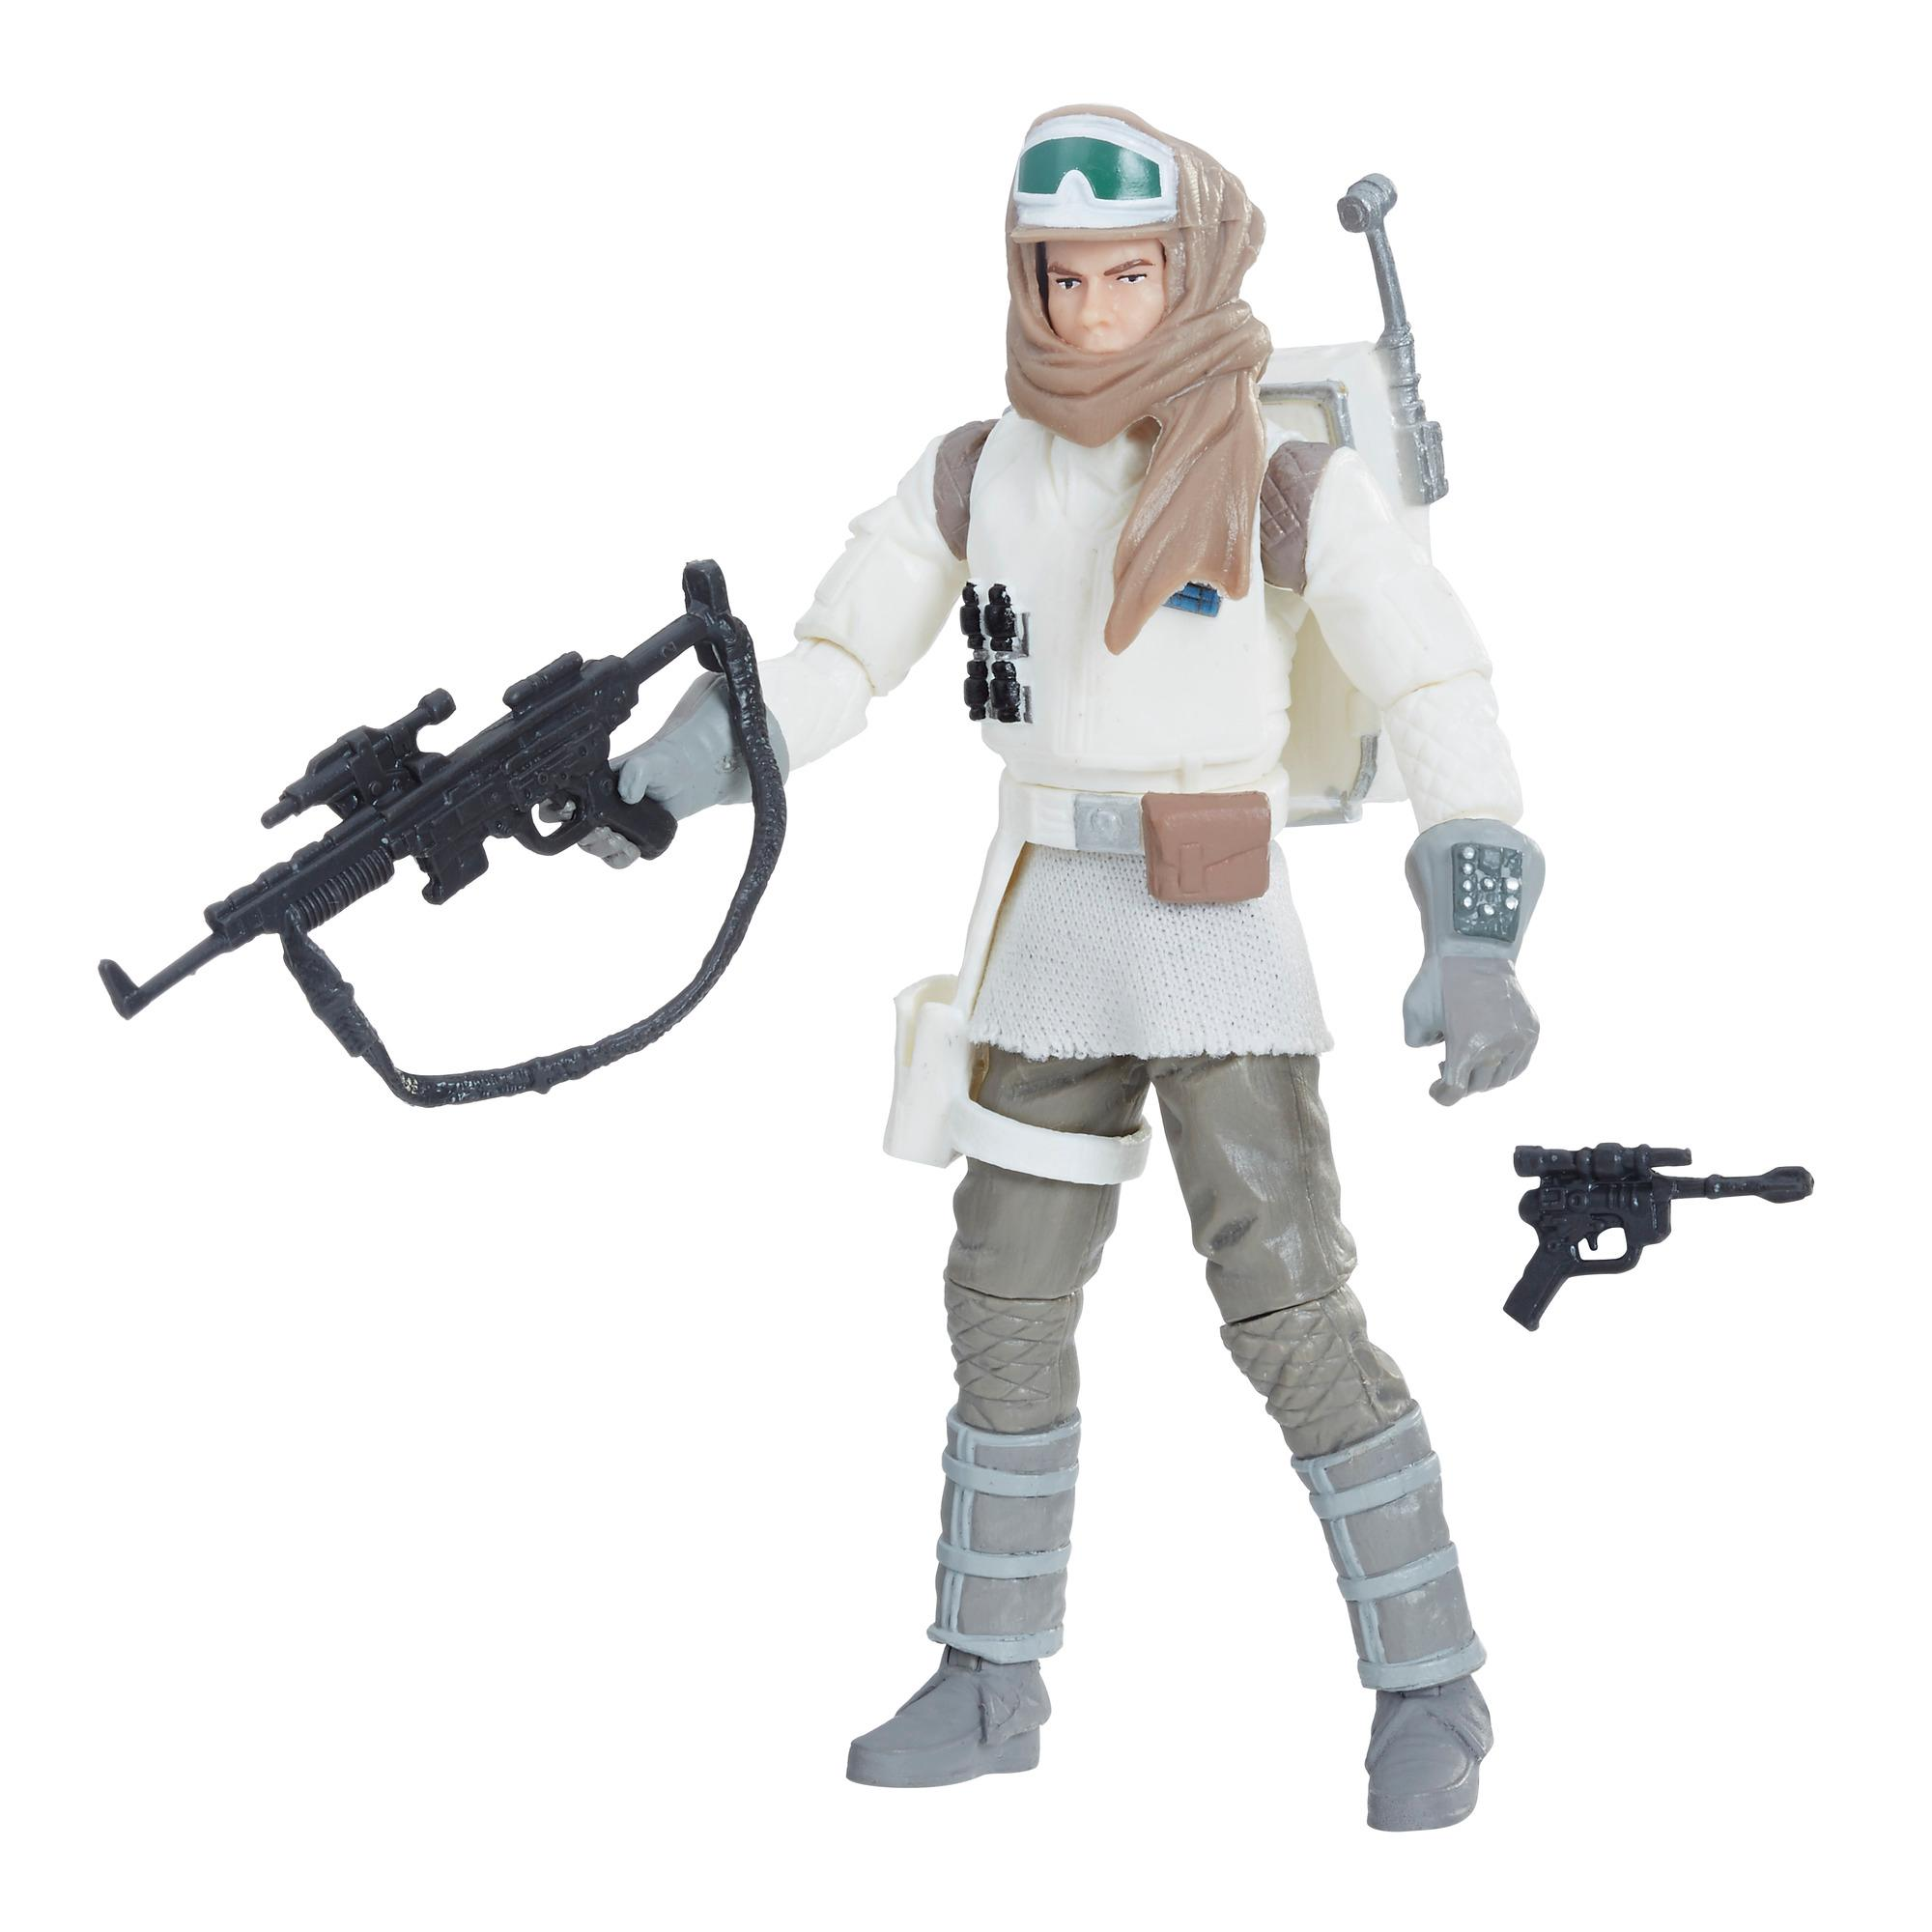 STAR WARS BLACK SERIES - FIGURINE VINTAGE SOLDIER HOTH